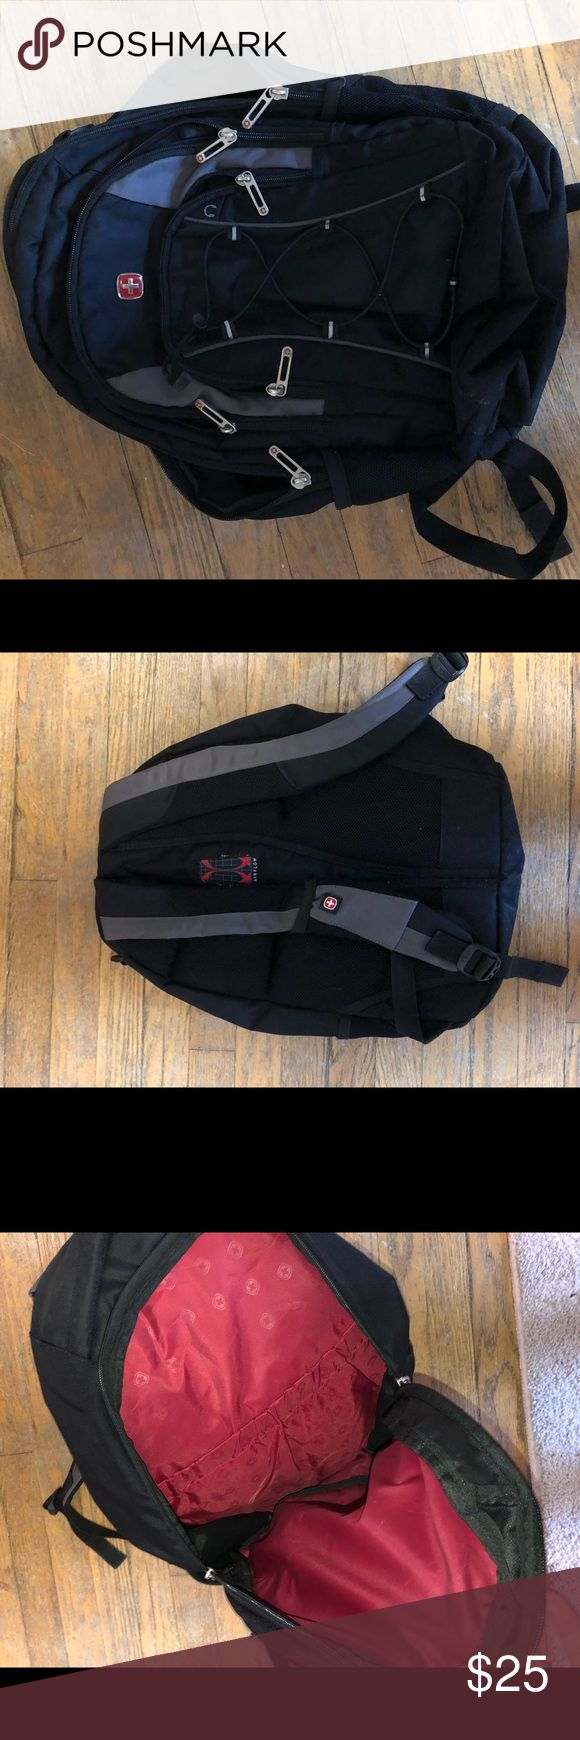 Black Swiss gear backpack Very lightly used, in great condition SwissGear Bags Backpacks